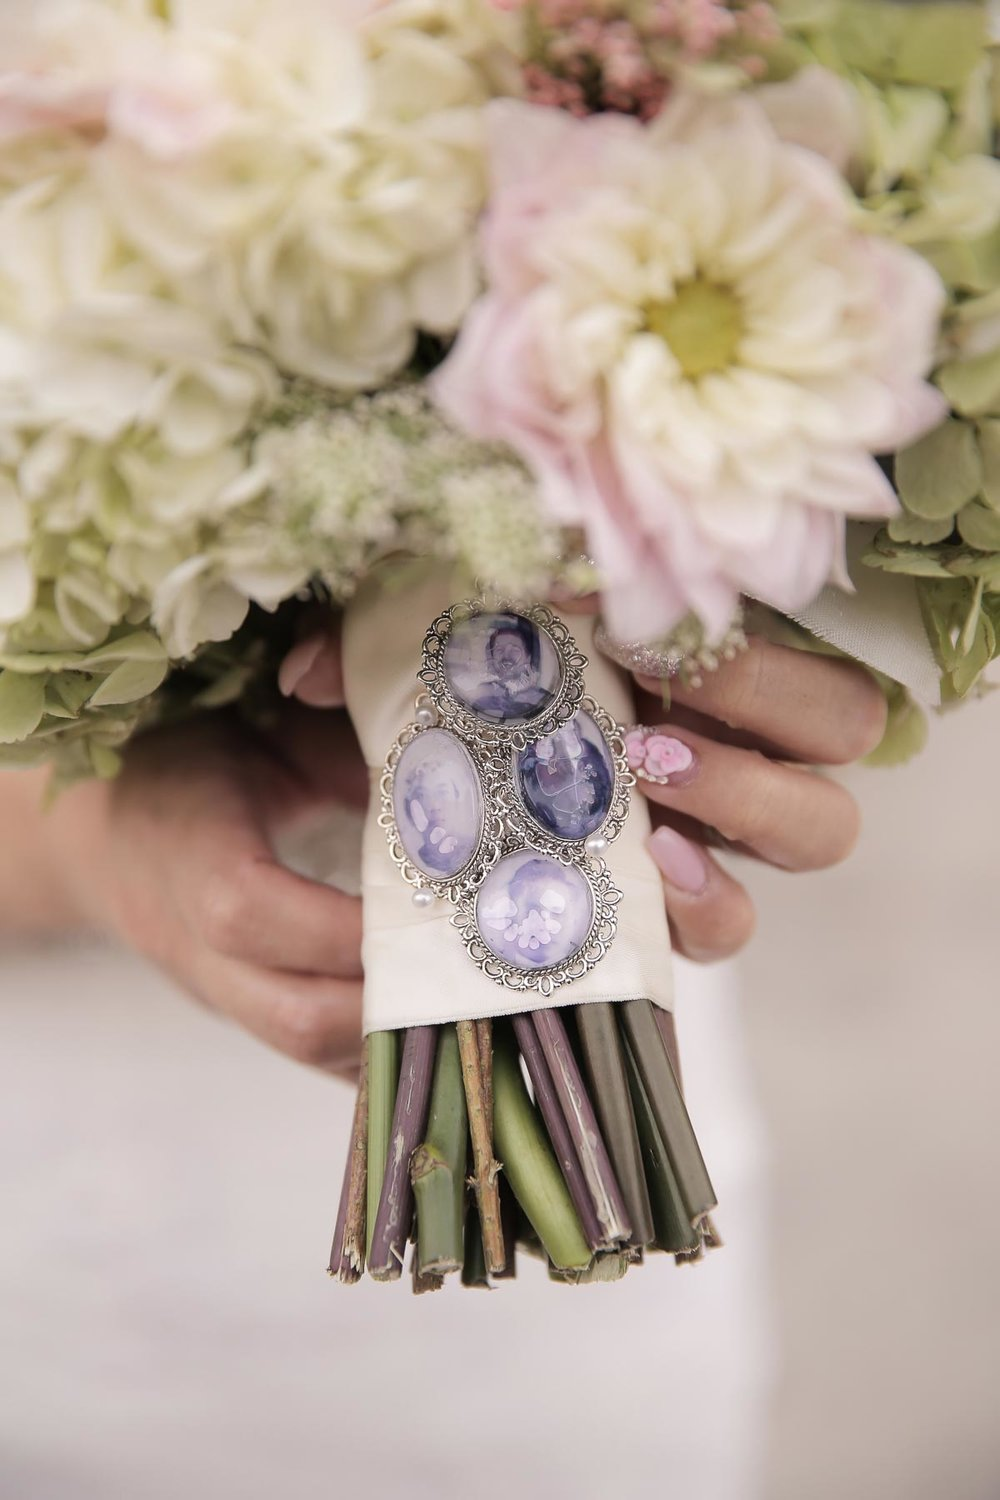 in-memory-of-ideas-bride-bouquet_pepper_nix_photography-14.jpg